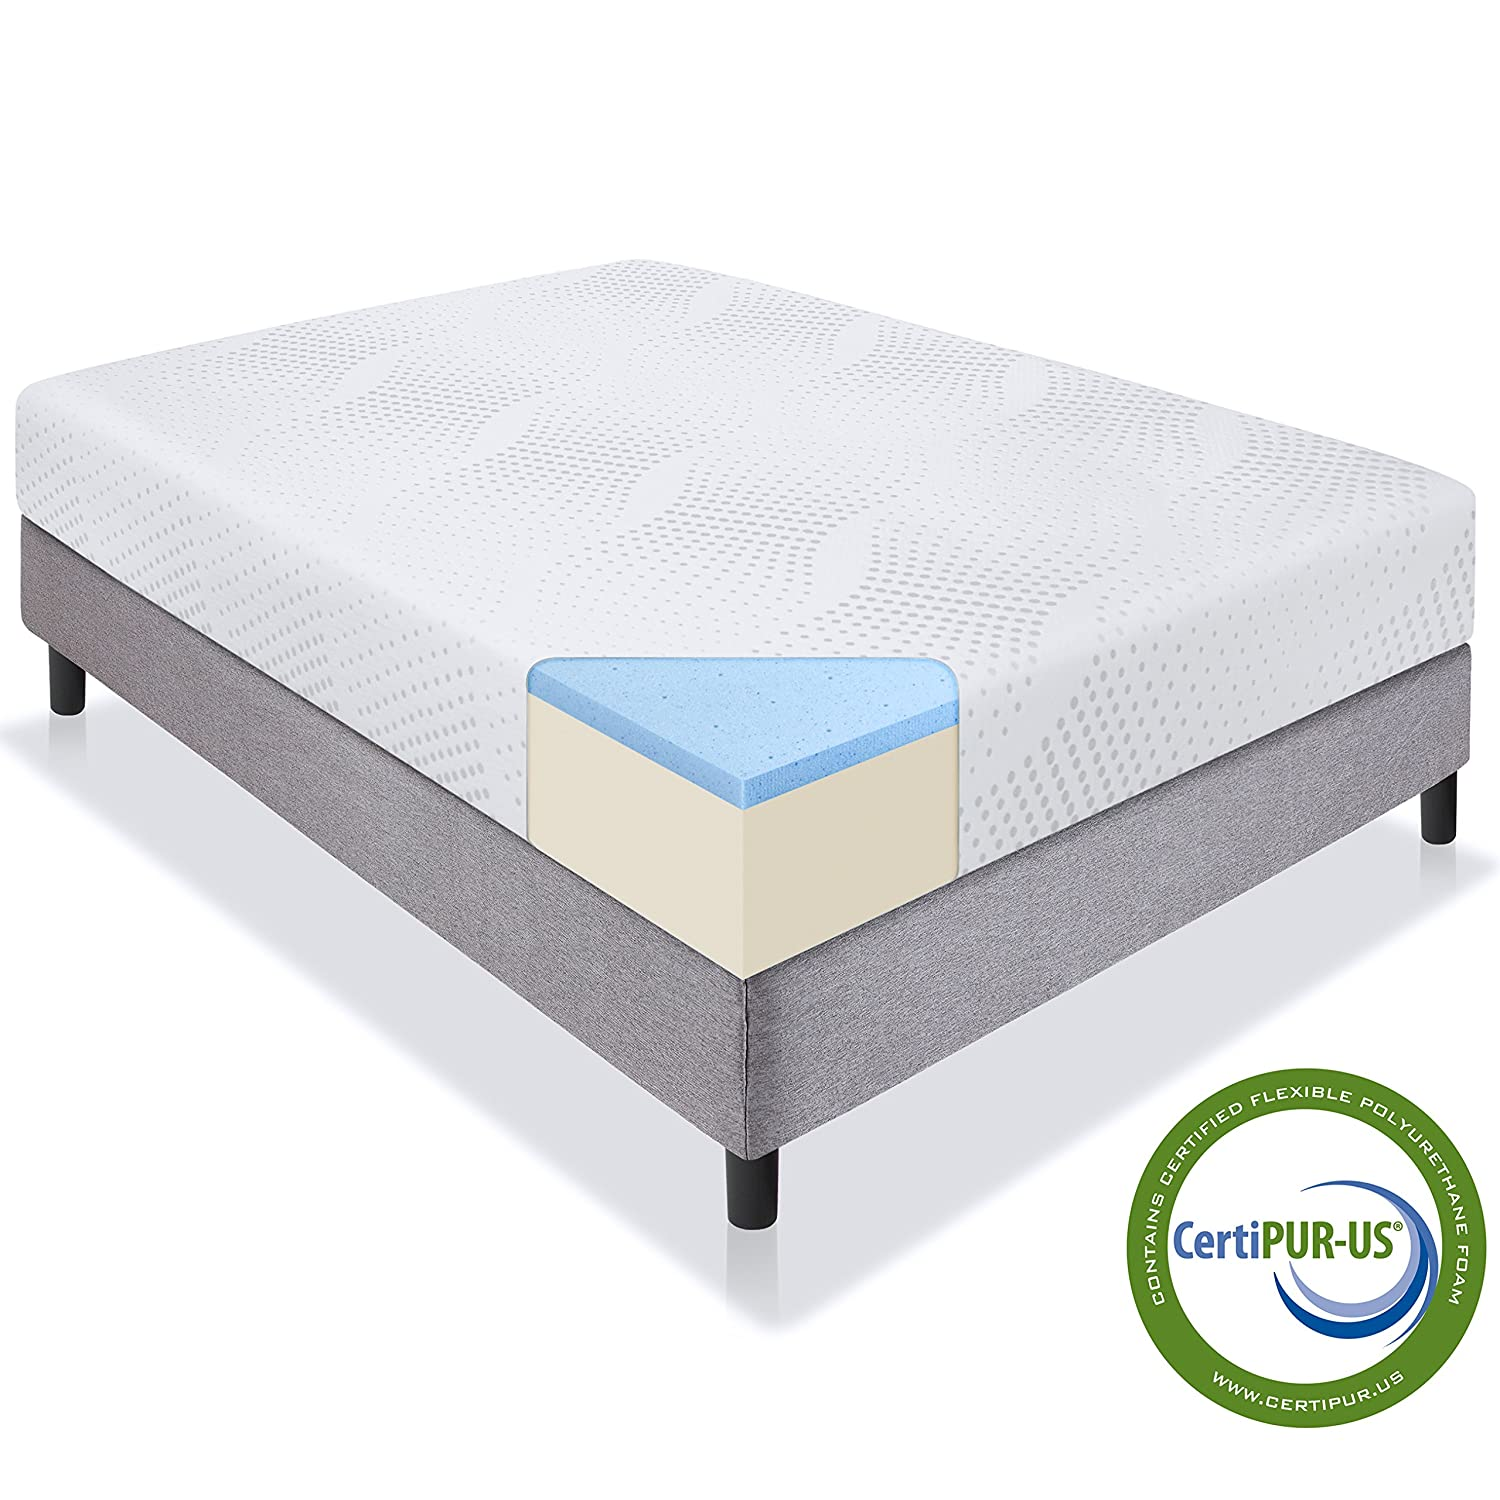 Best Choice Products 10in Queen Size Dual Layered Gel Memory Foam Mattress with CertiPUR-US Certified Foam